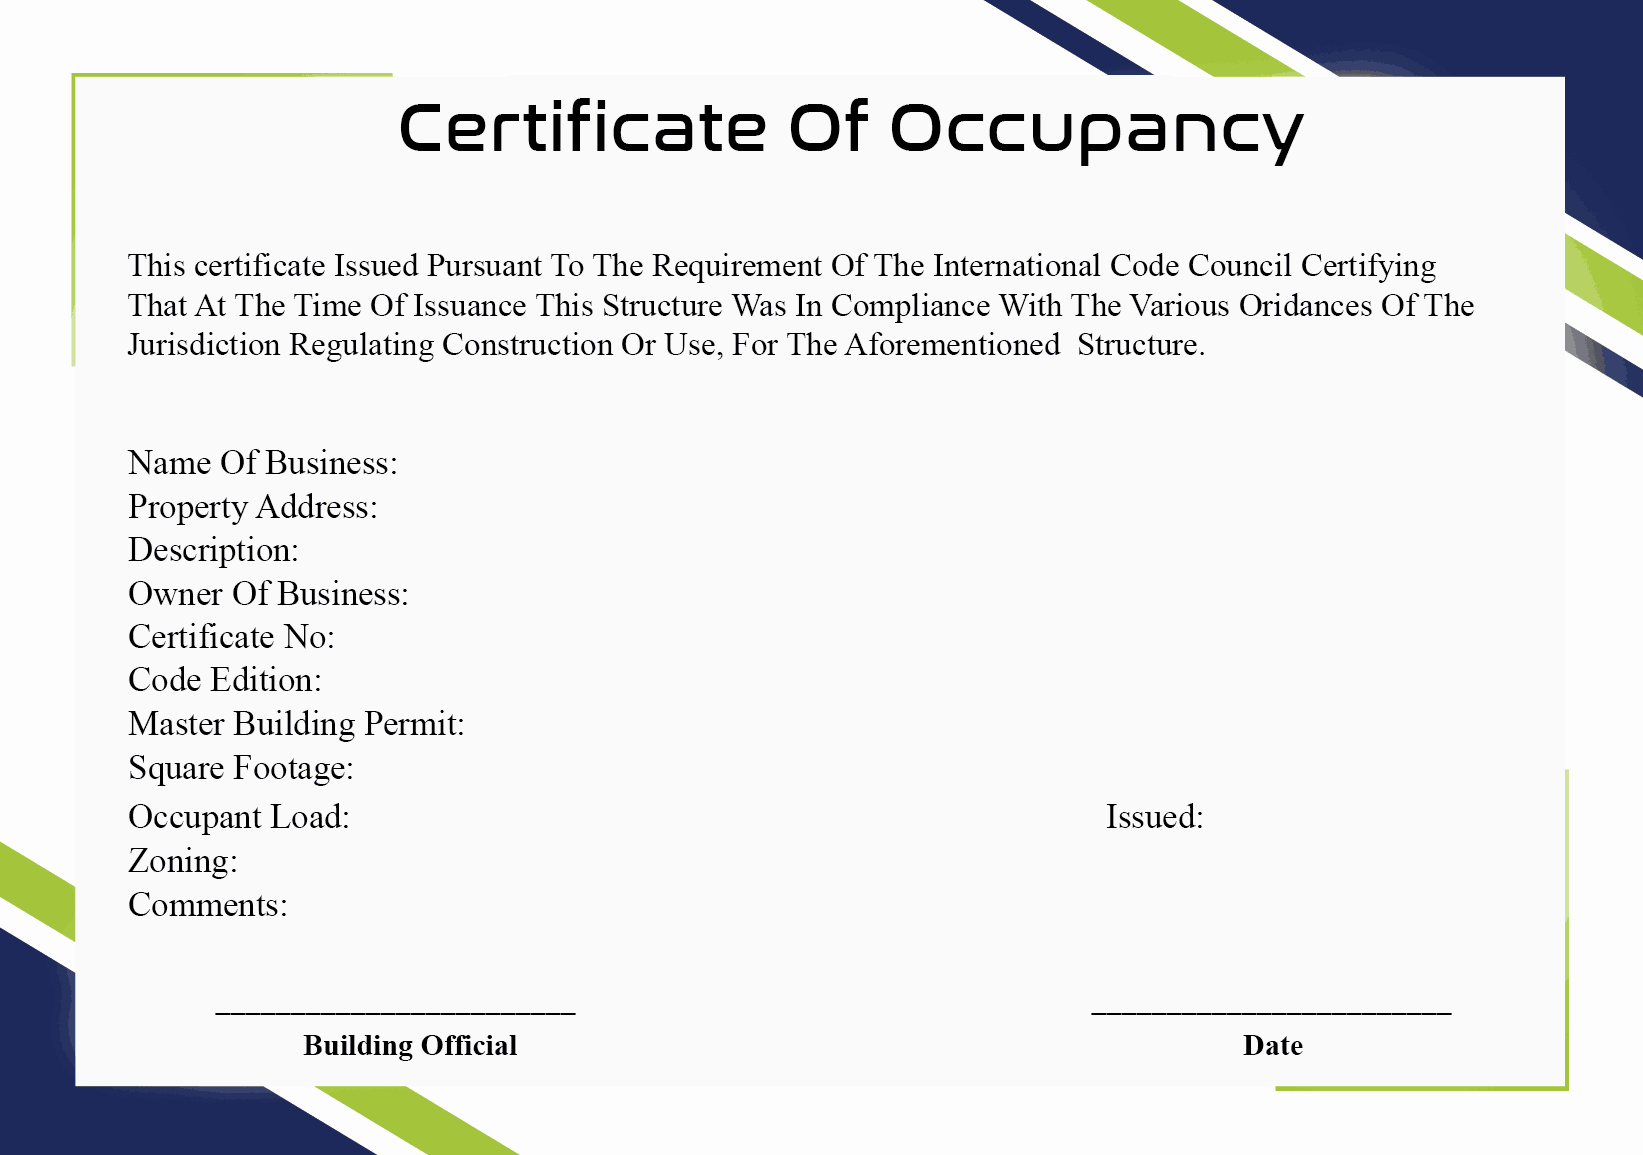 Certificate Of Occupancy Template New 4 Certificate Of Occupancy Templates Word Excel formats